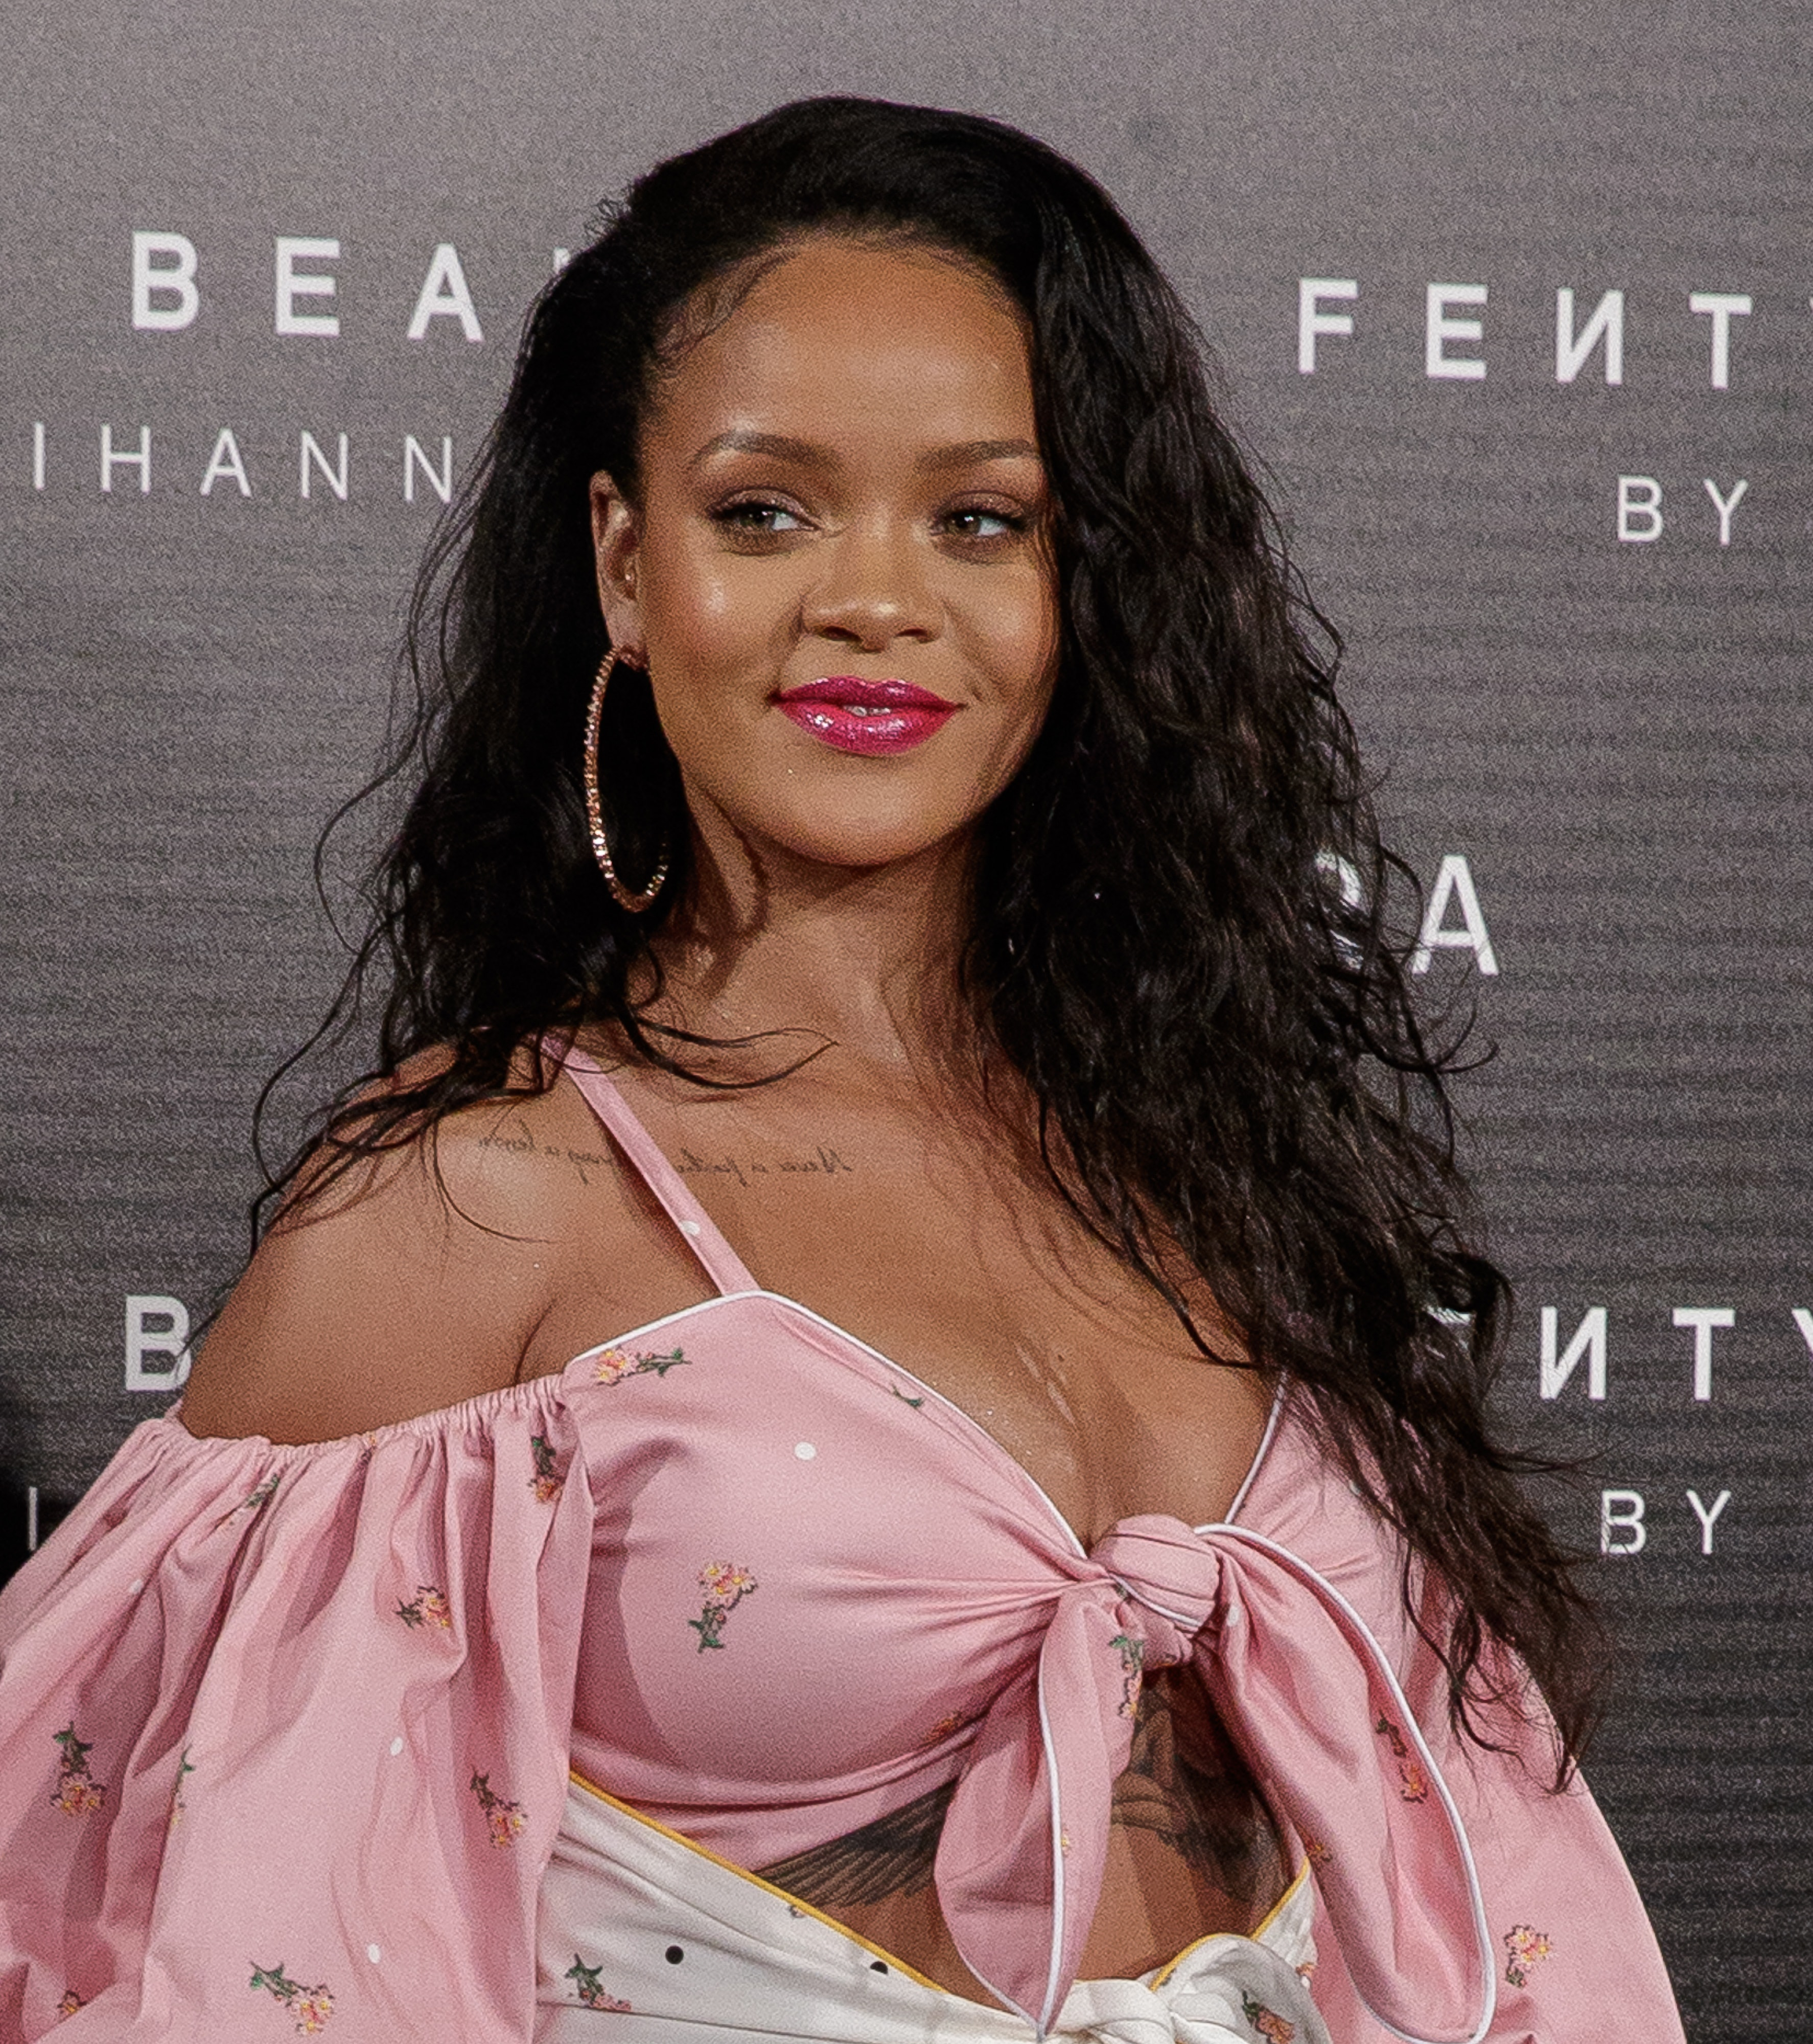 Communication on this topic: Rihanna Just Shared the Next Fenty Launch, , rihanna-just-shared-the-next-fenty-launch/